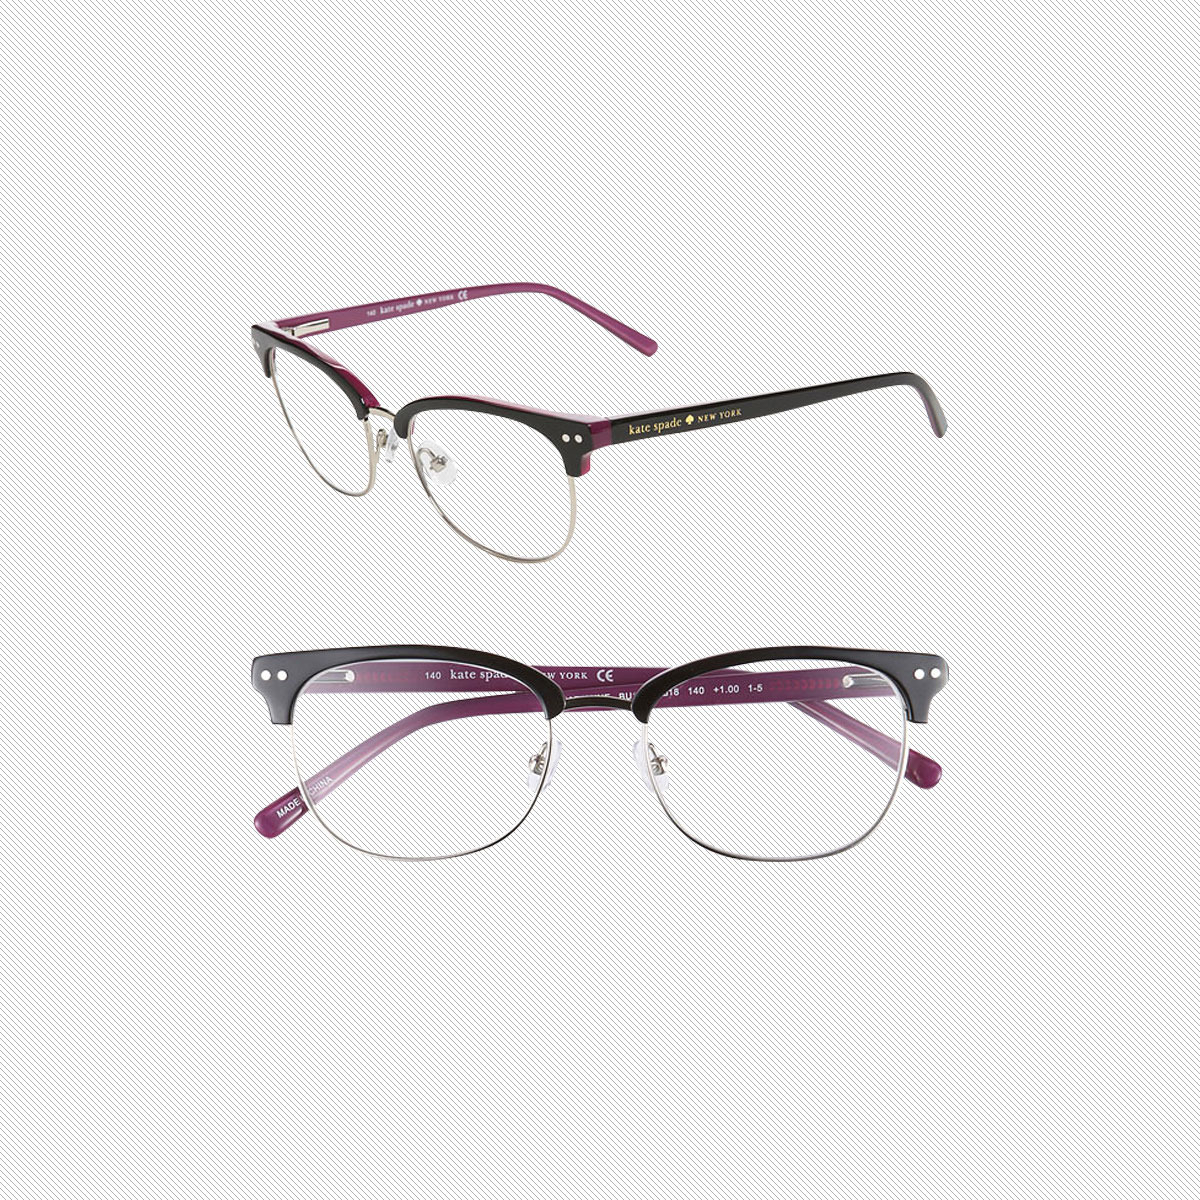 Kate Spade Eyeglass Frames 2012 : - Fifteen Pairs of Stylish Spectacles - The Cut